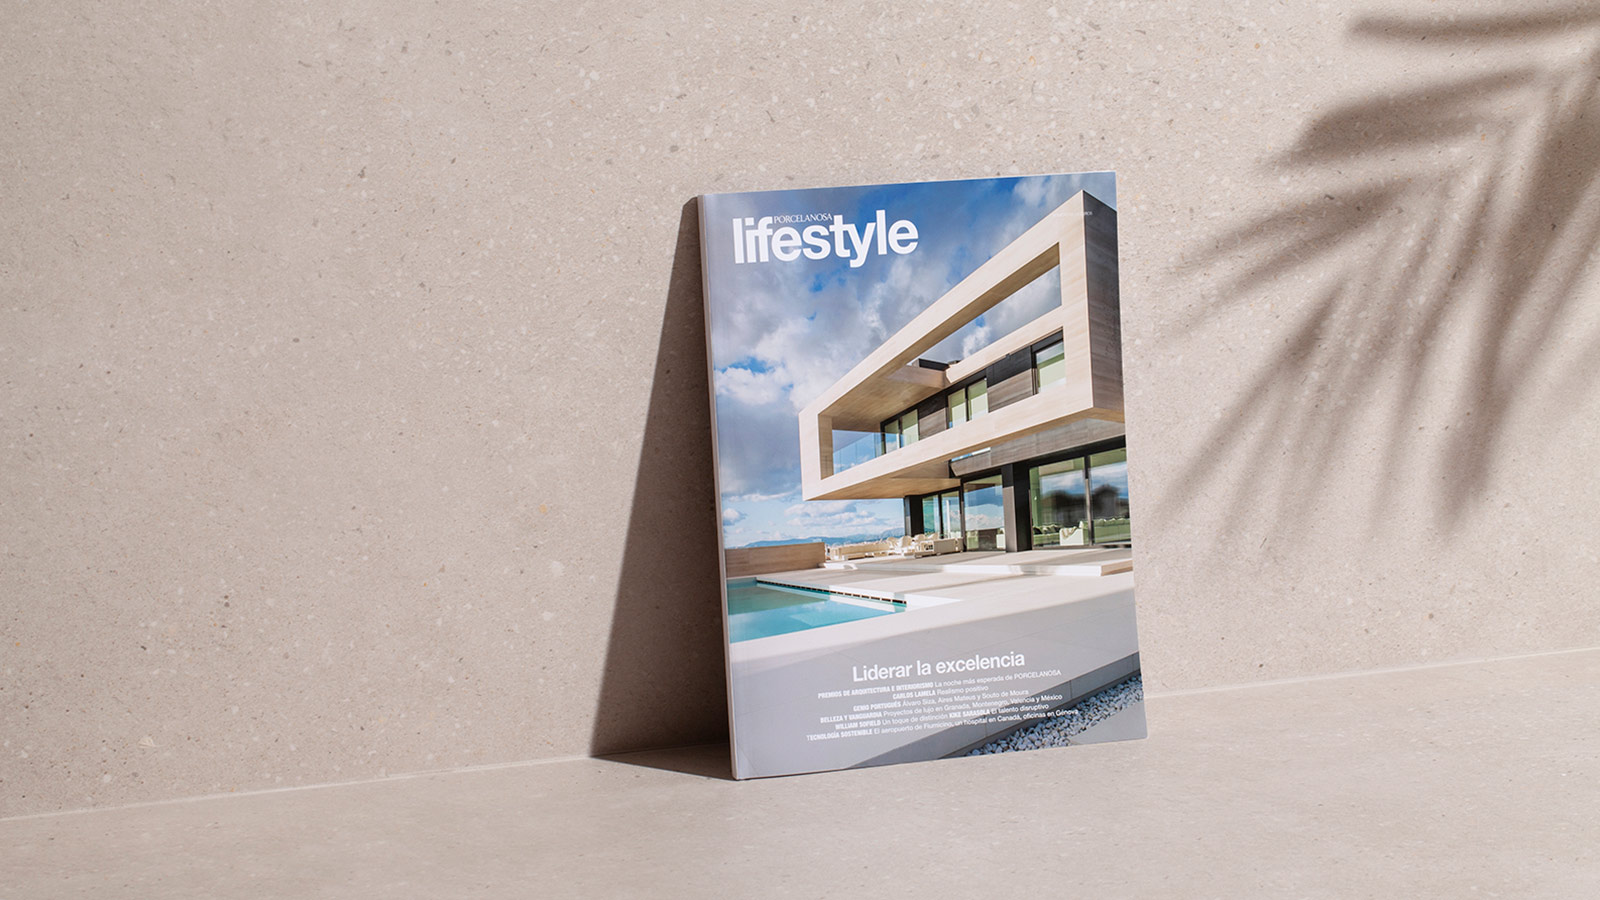 The 34th Lifestyle Magazine